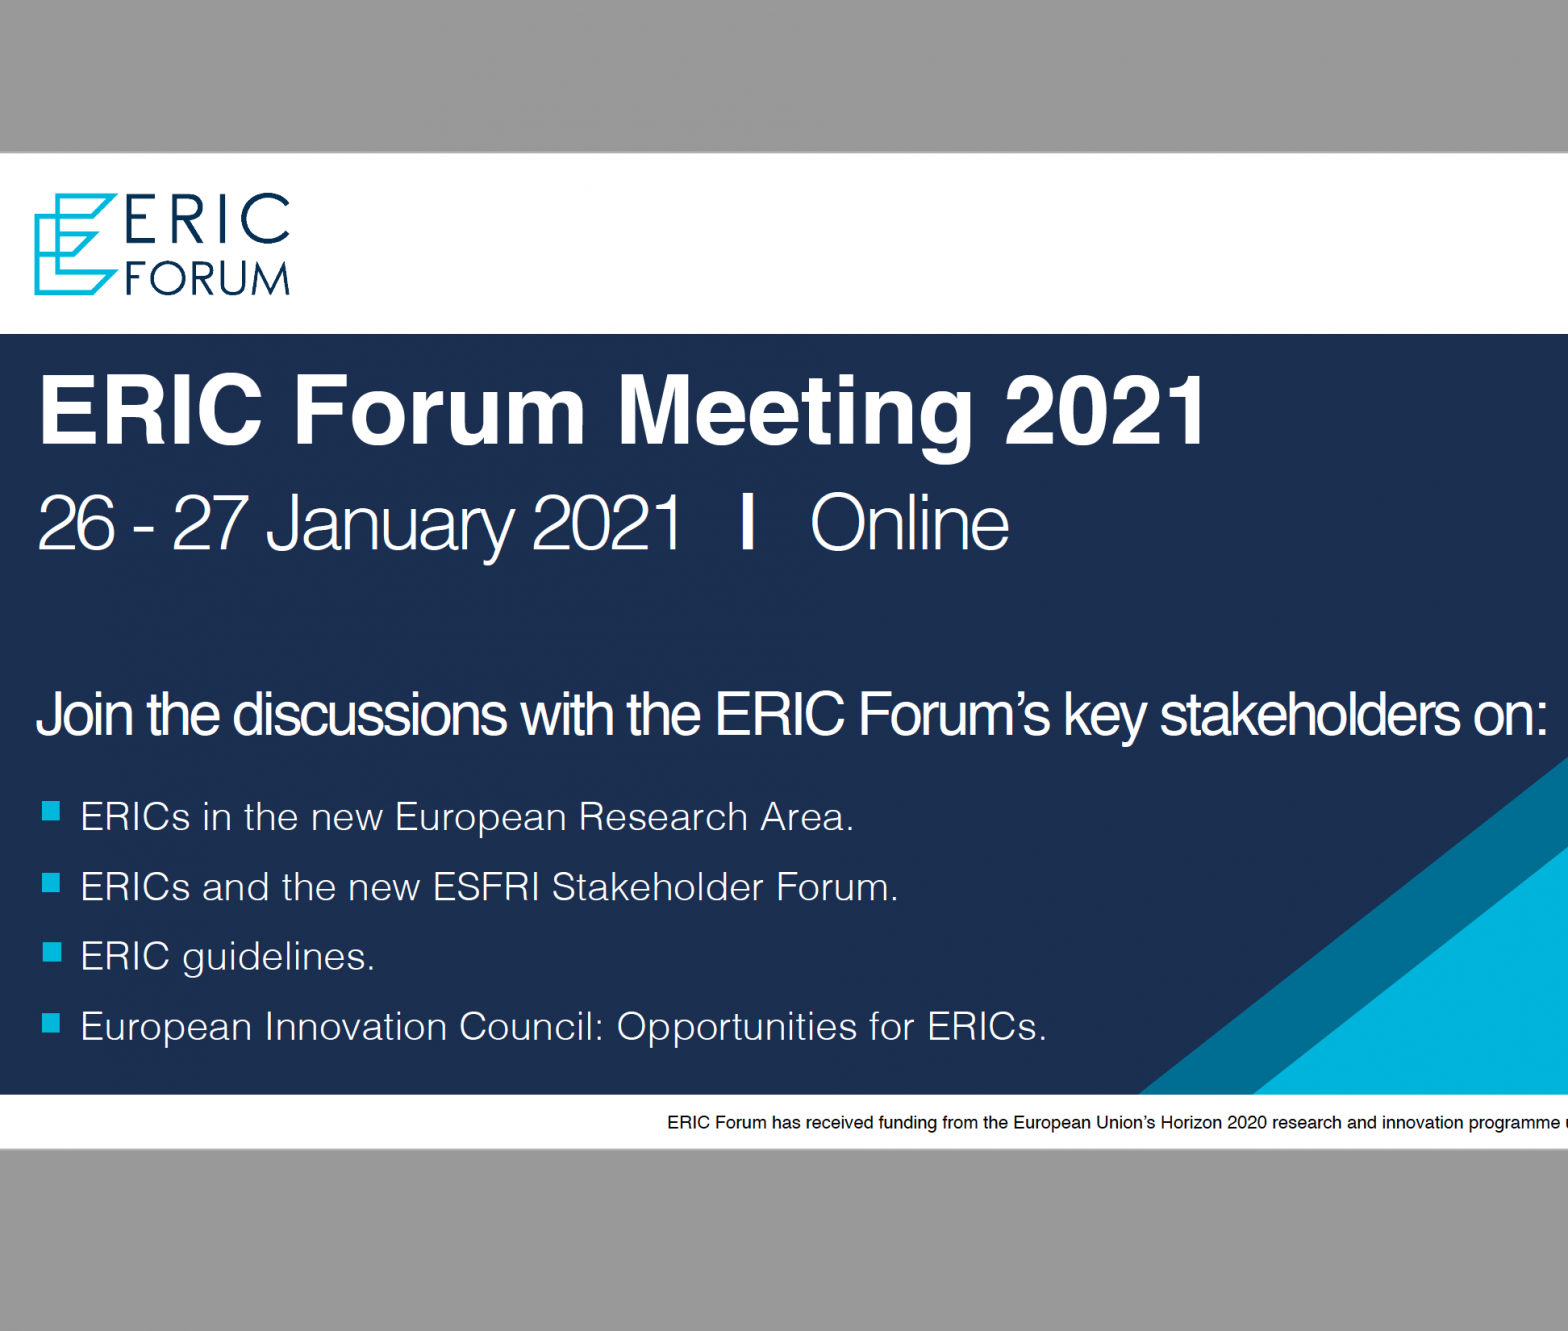 The ERIC Forum meeting will be held on 26-27 January 2021